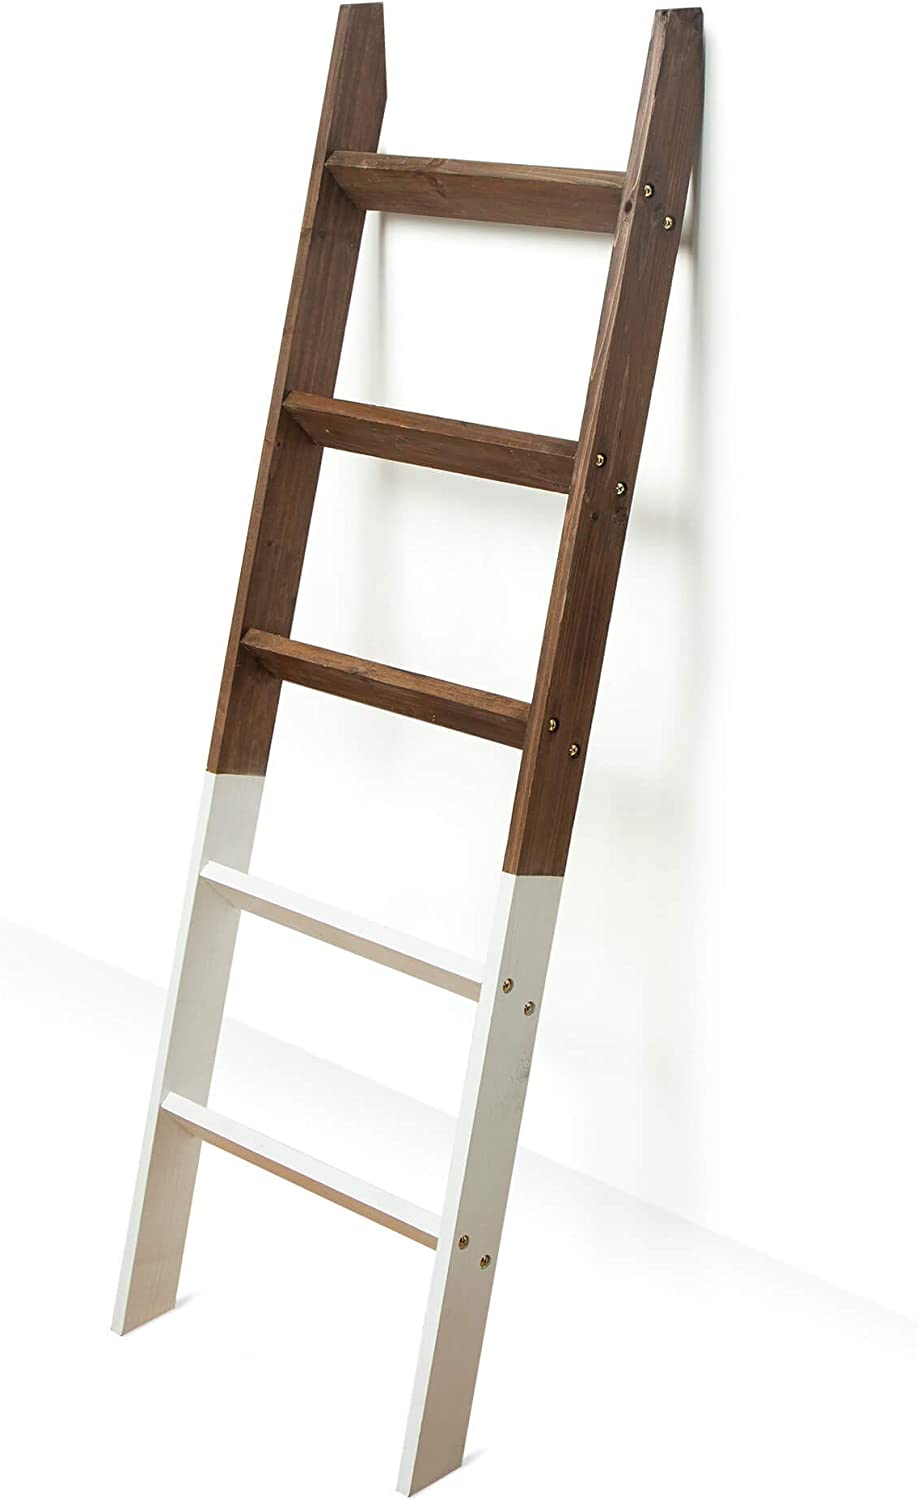 Blanket Ladder 5 ft. Wood Rustic Decorative Quilt Ladder. White Dipped Brown Two Toned Vintage Wooden Decor. Throw Blankets Holder Rack